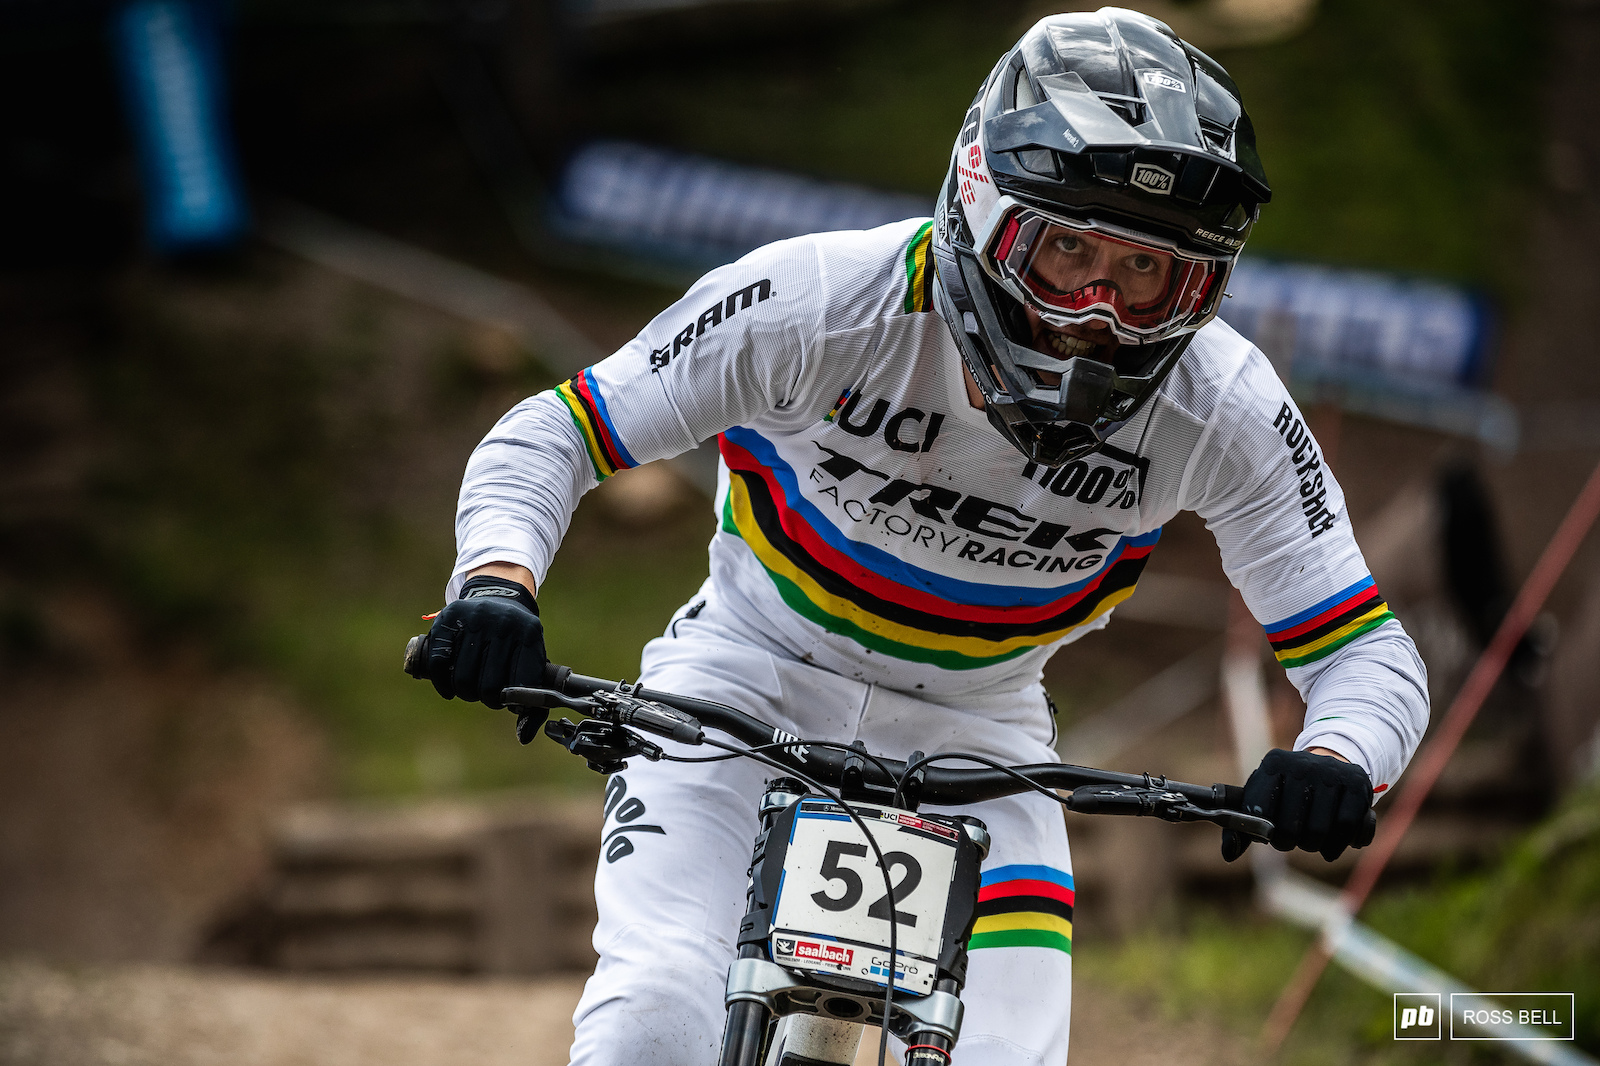 Returning to the scene of the crime. Reece Wilson back up his World Champs win with a 4th place in very different conditions.